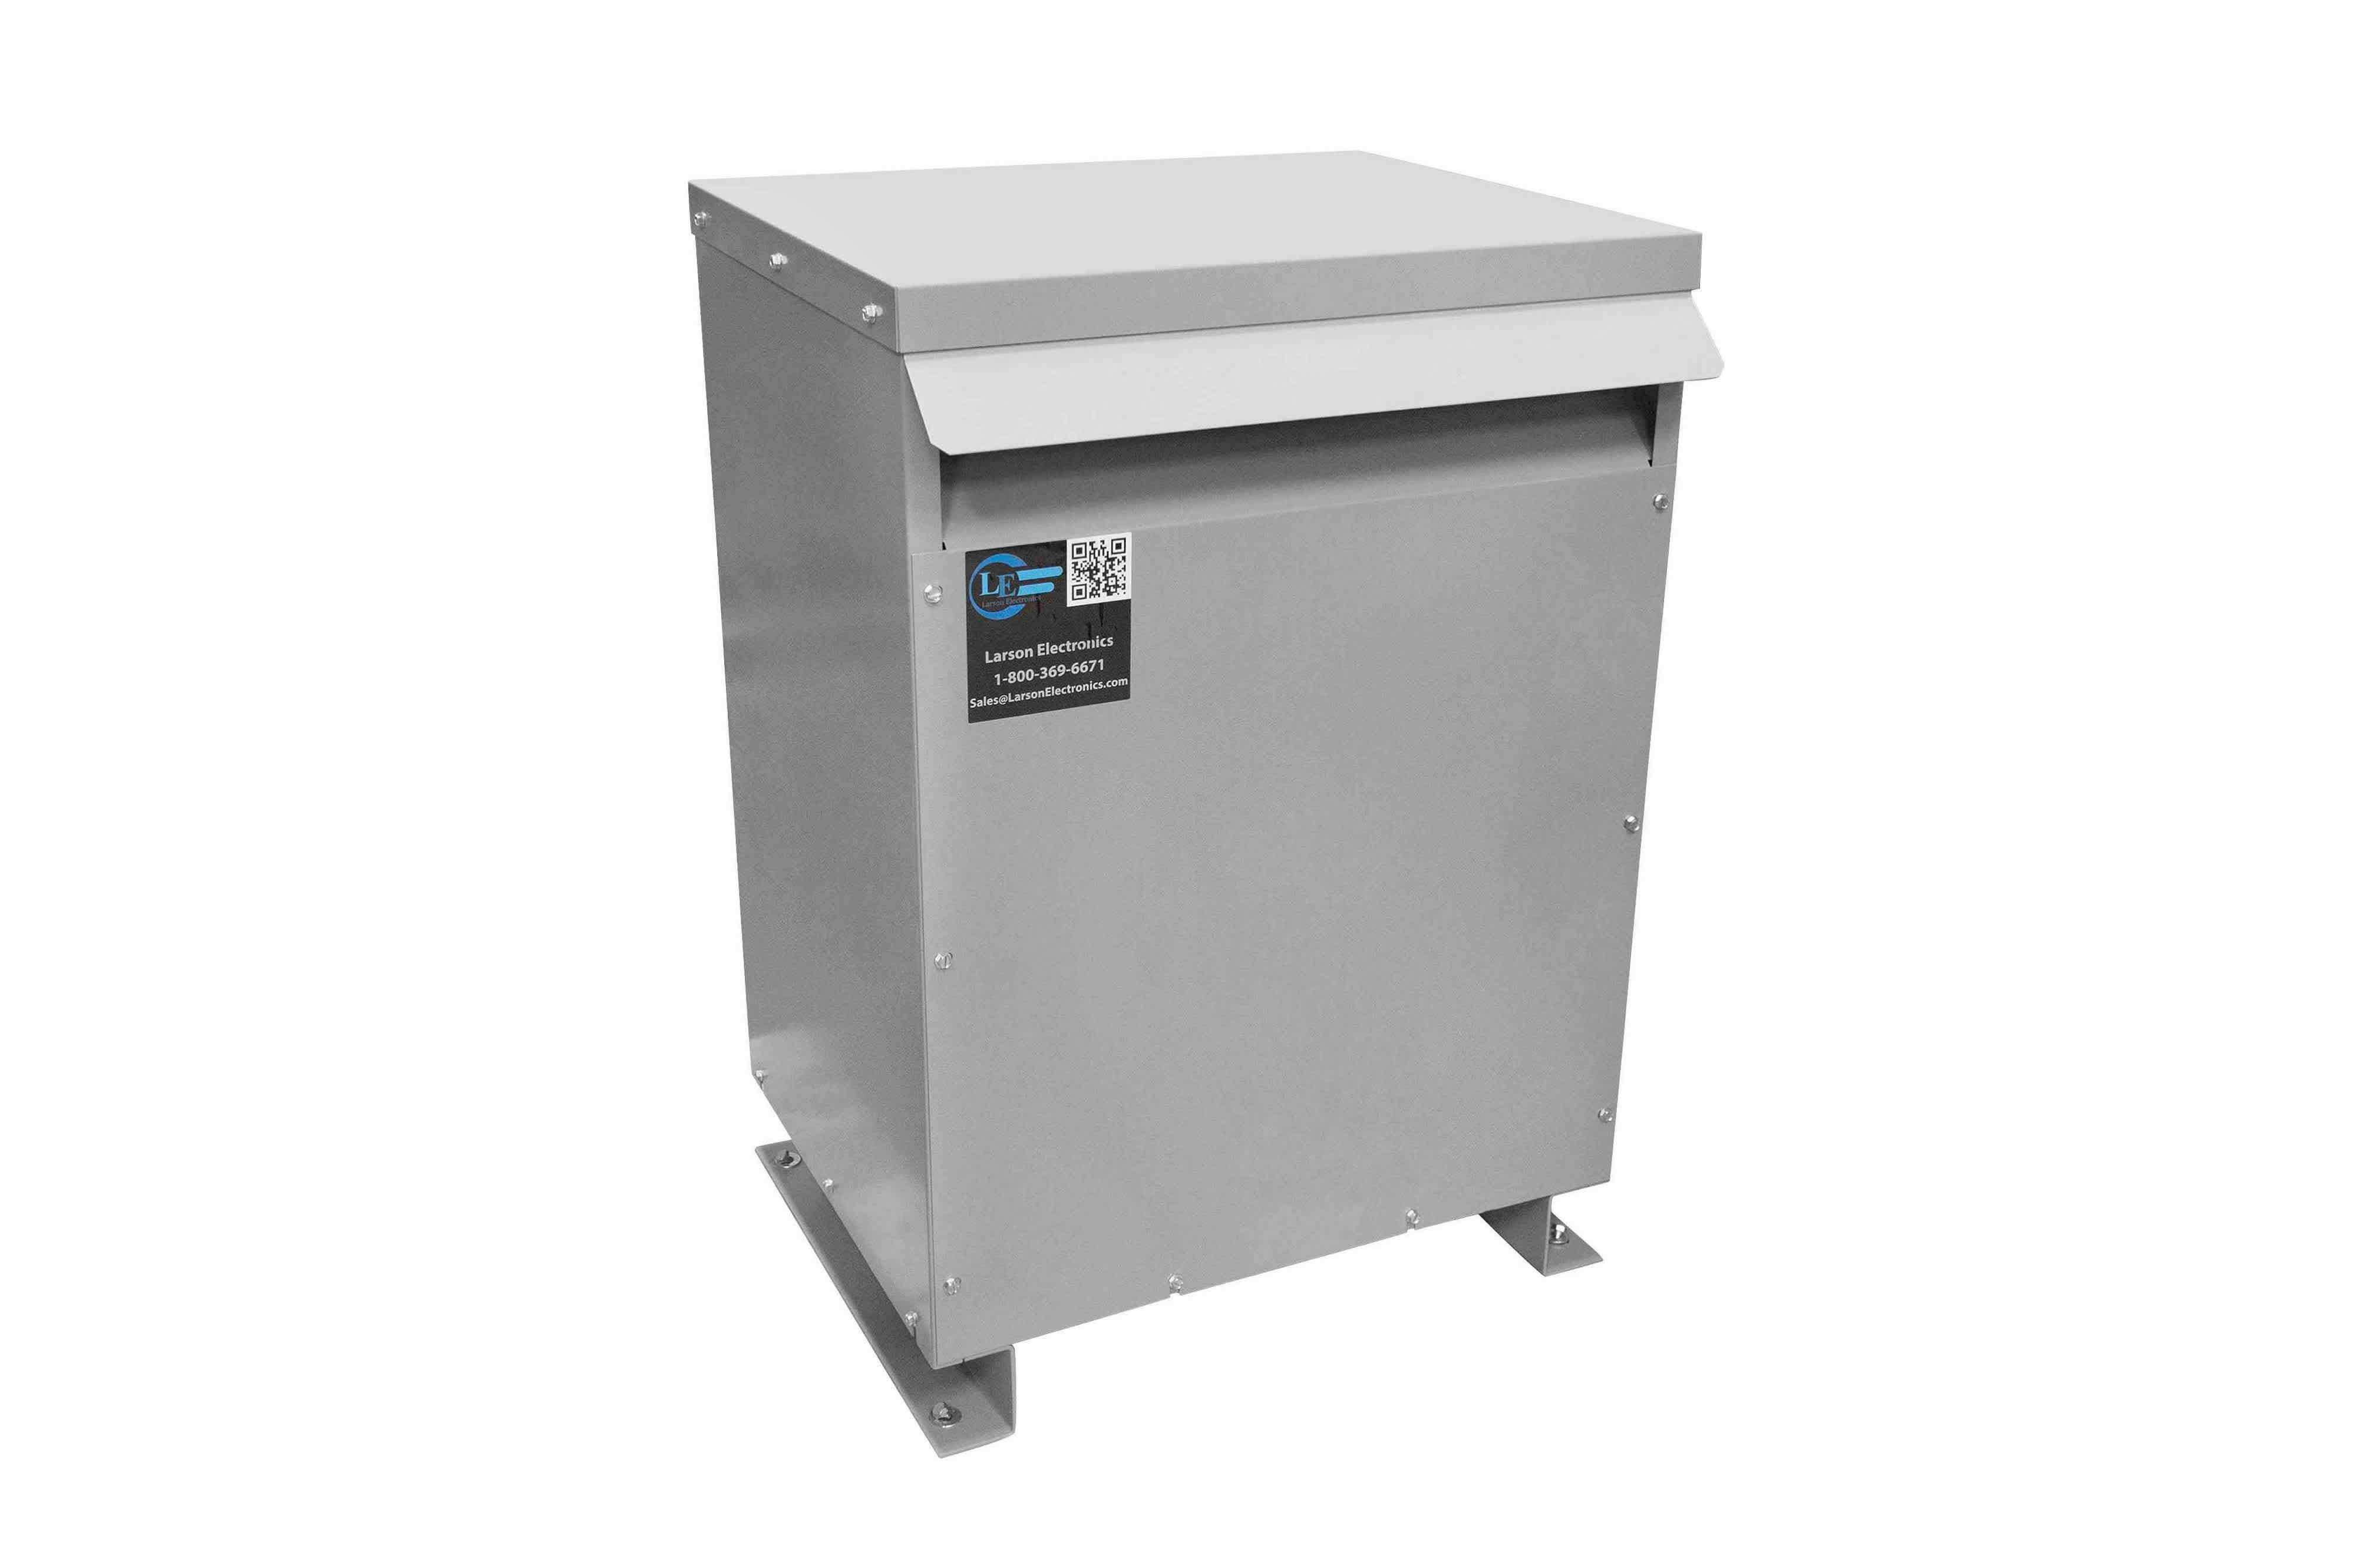 37.5 kVA 3PH Isolation Transformer, 230V Wye Primary, 480Y/277 Wye-N Secondary, N3R, Ventilated, 60 Hz